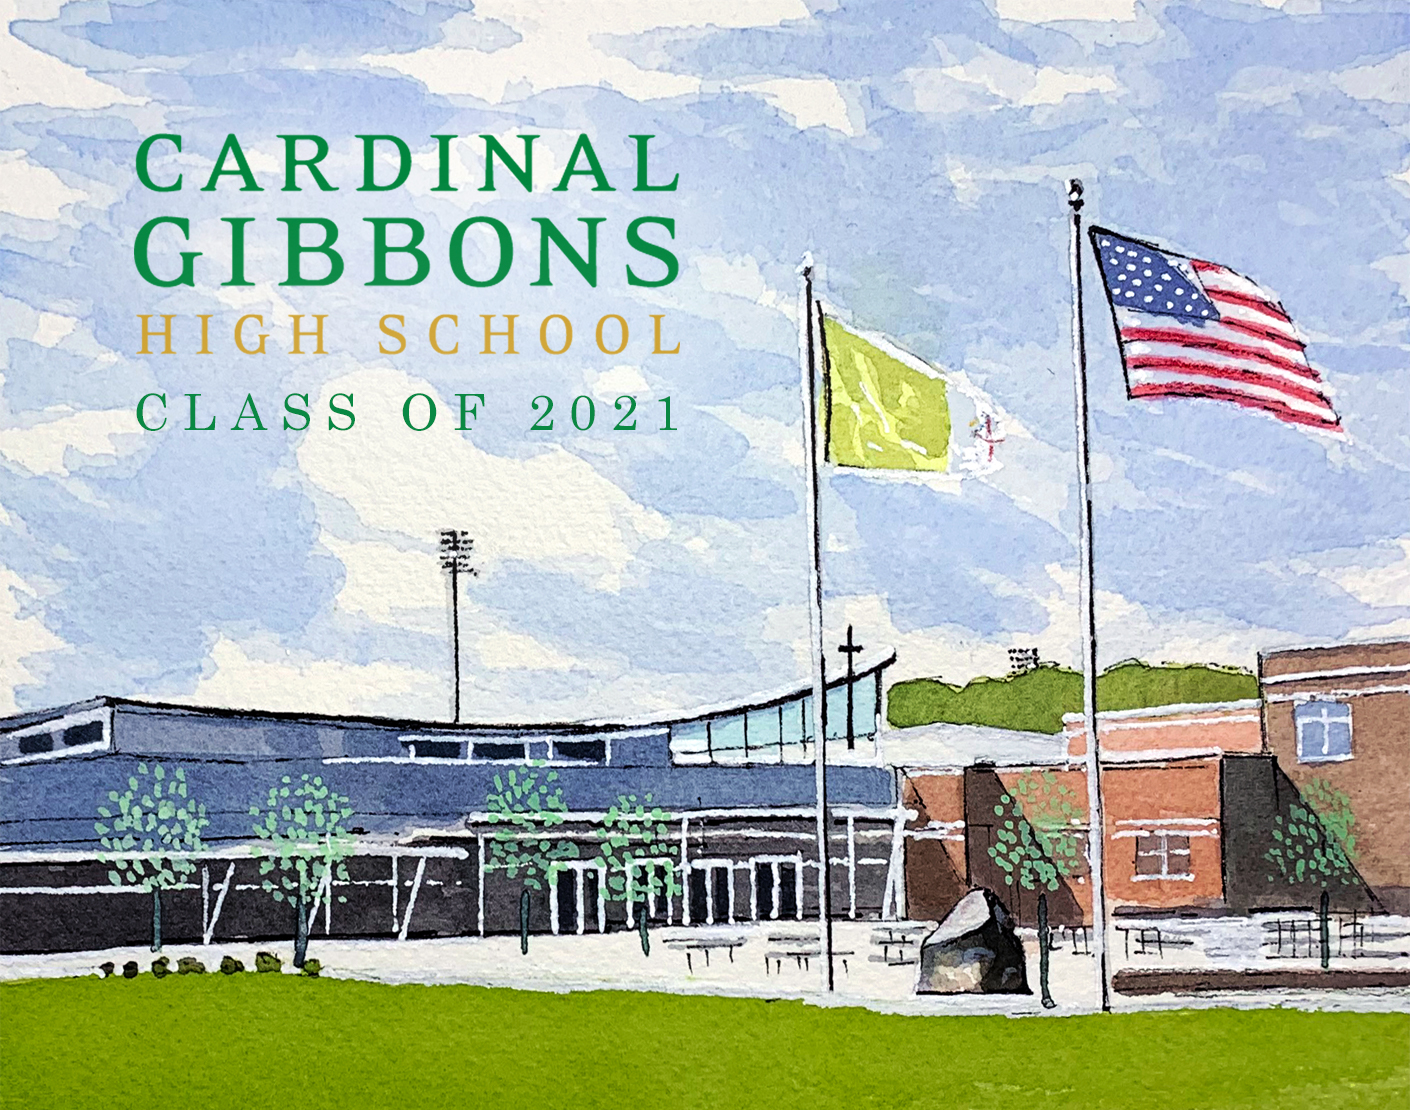 Cardinal Gibbons High School